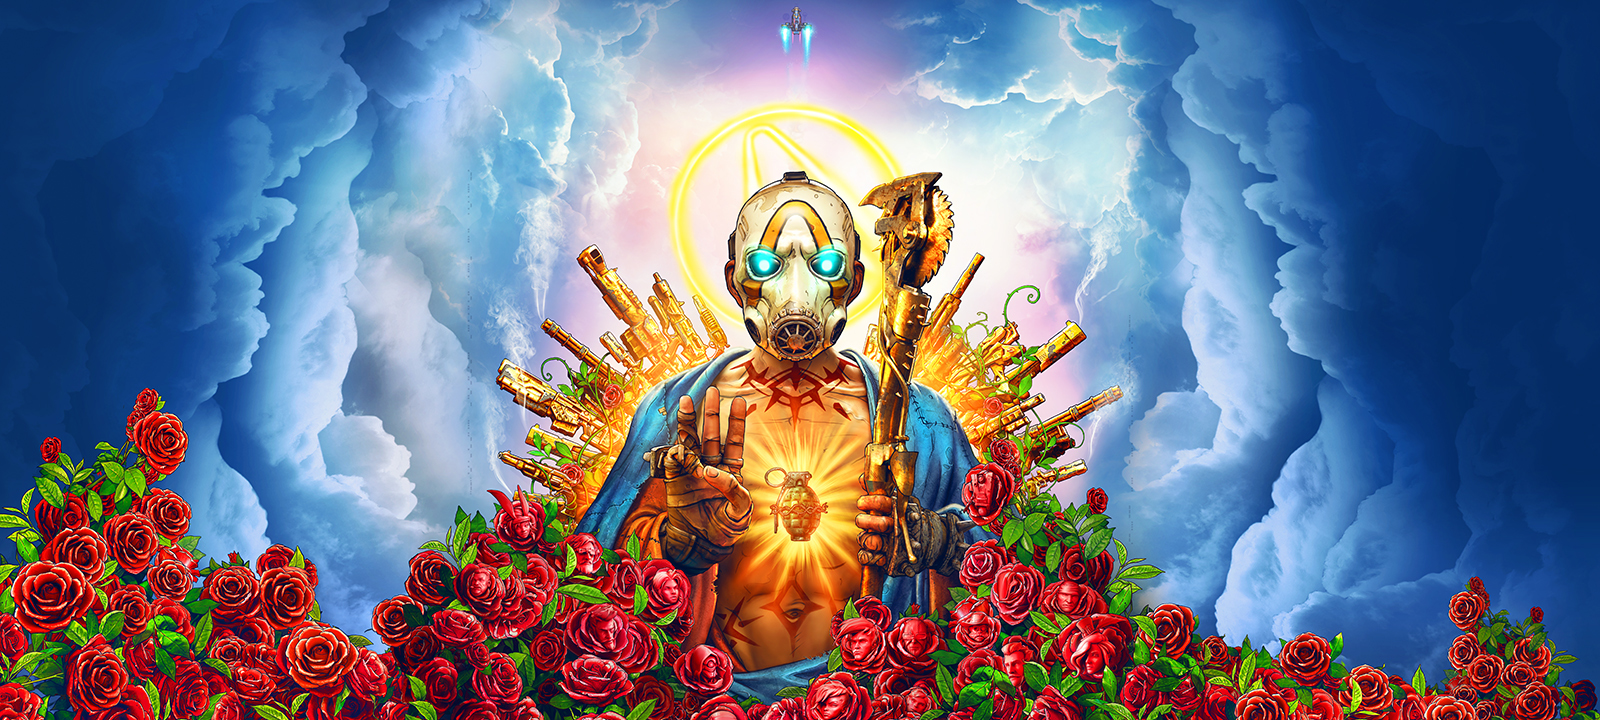 The Art of Borderlands 3: An Evening with Gearbox Software